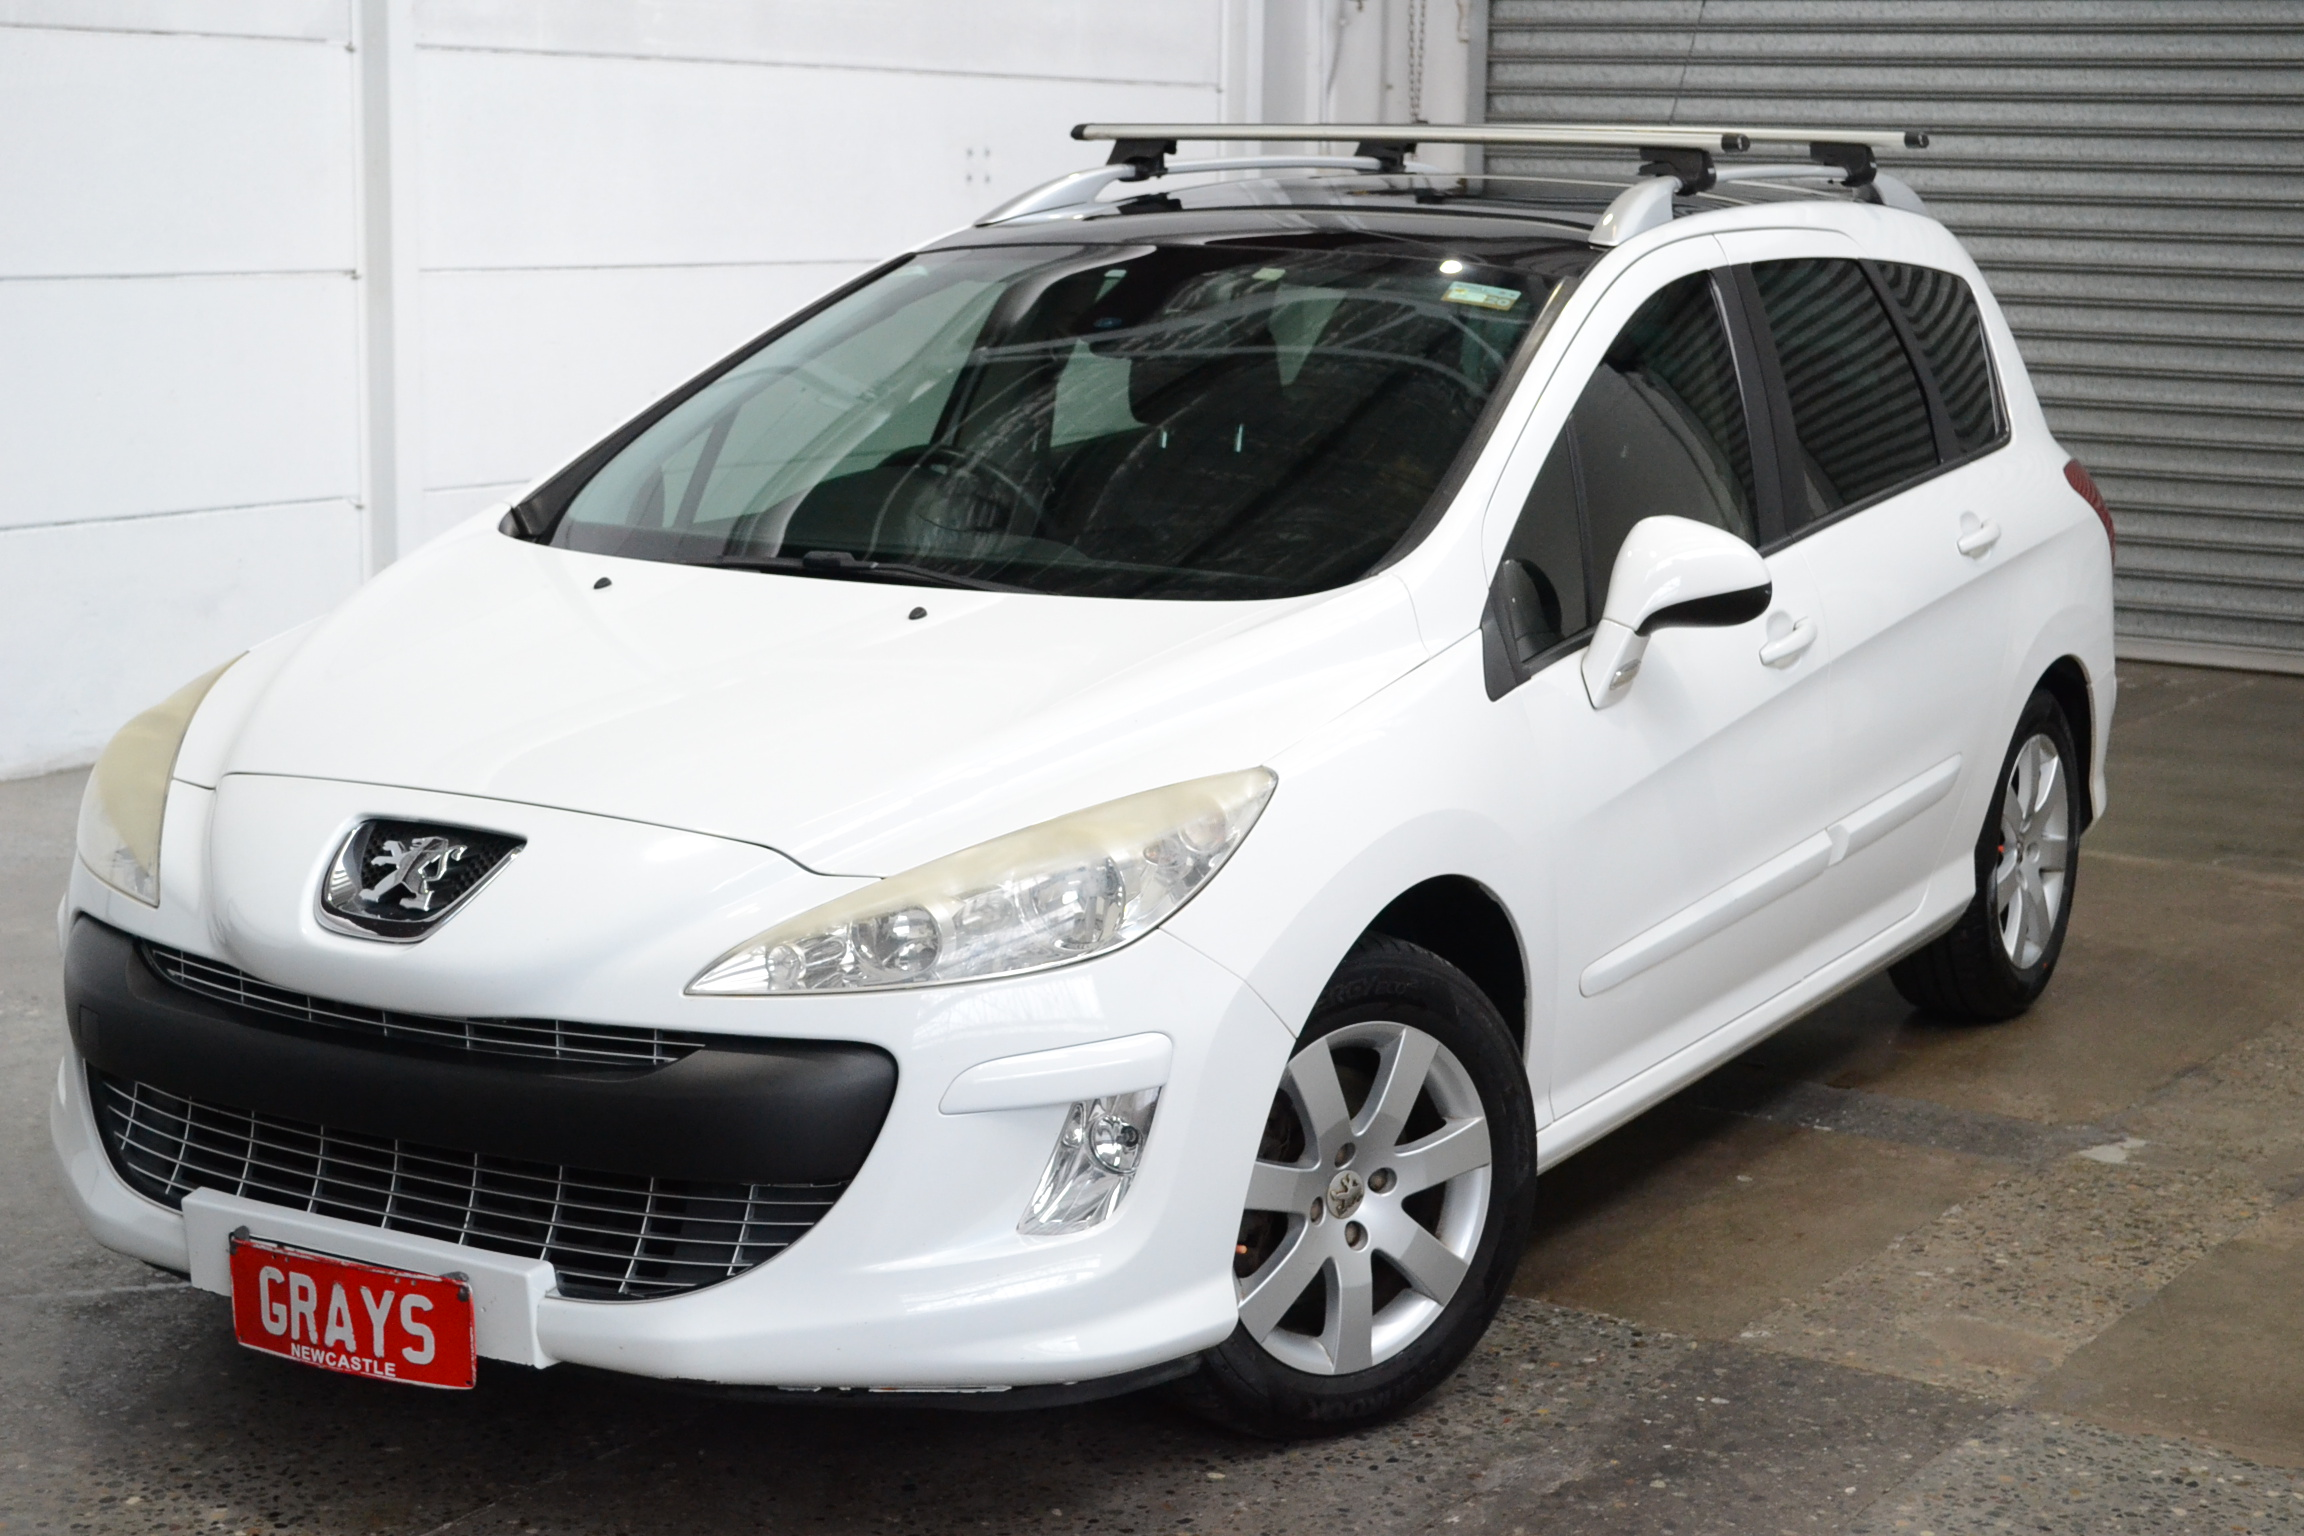 2008 Peugeot 308 TOURING XSE HDI 2.0 Turbo Diesel Manual Wagon